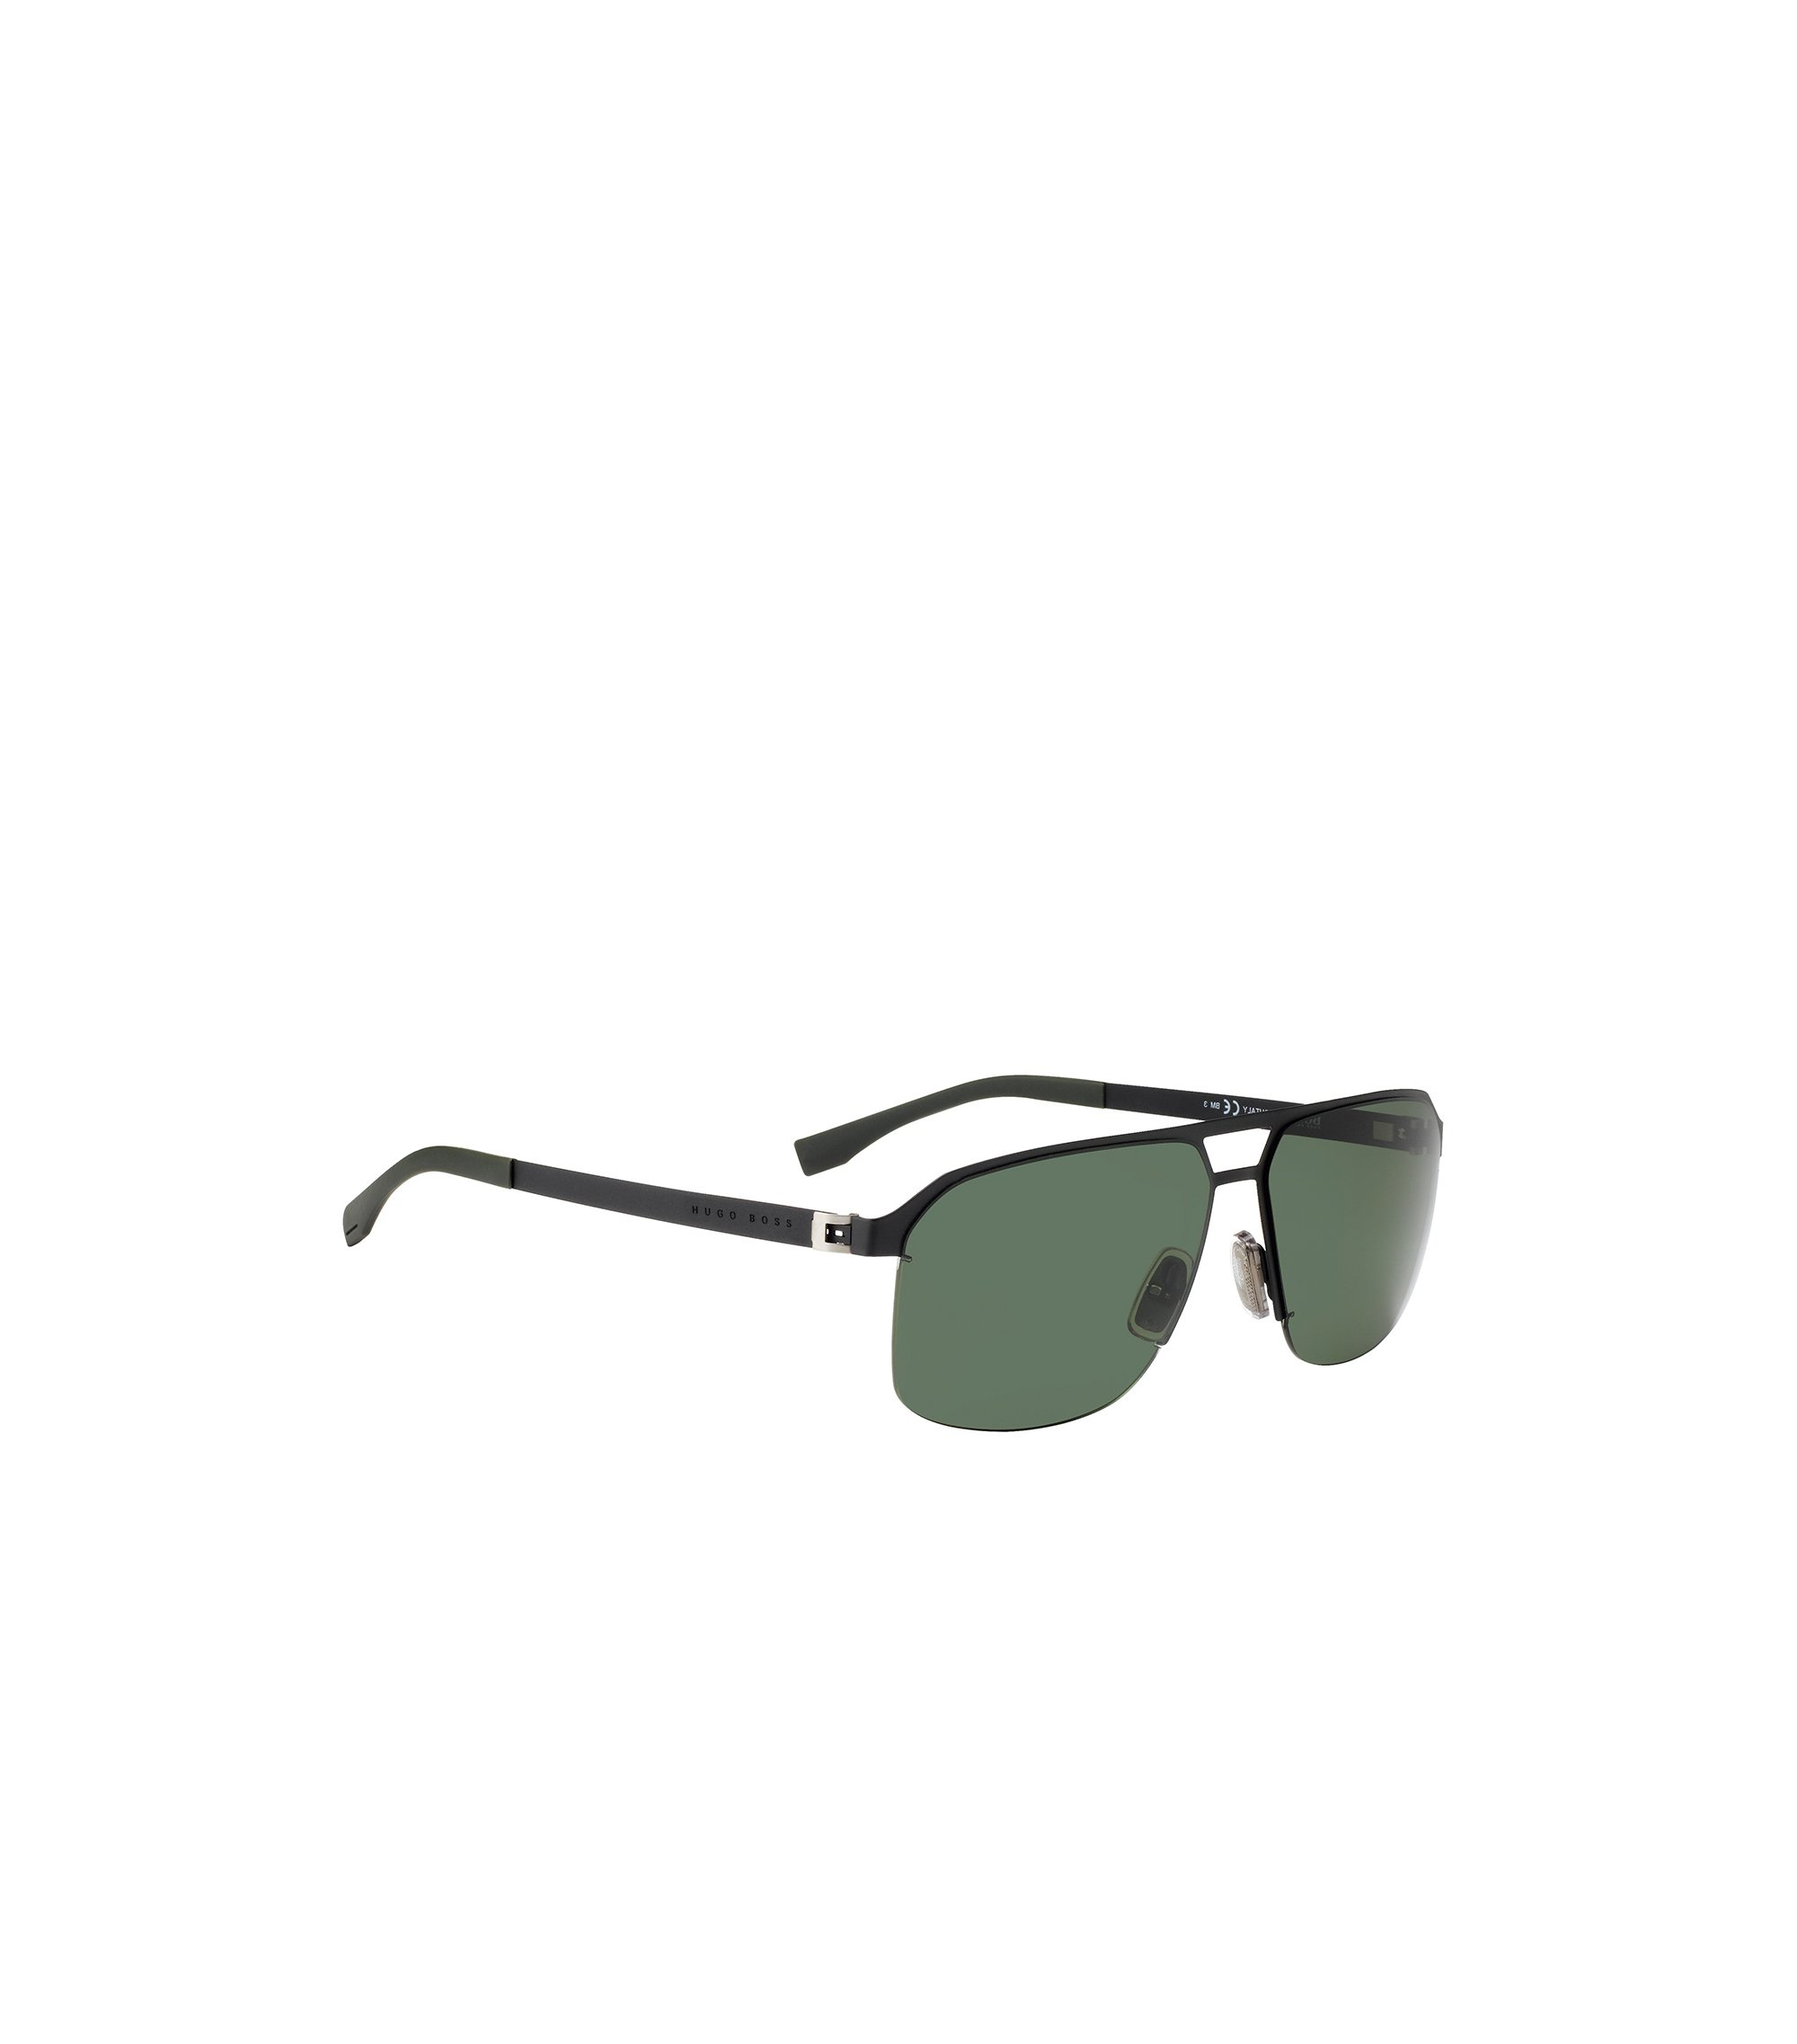 Matte Navigator Sunglasses | BOSS 0839S, Assorted-Pre-Pack